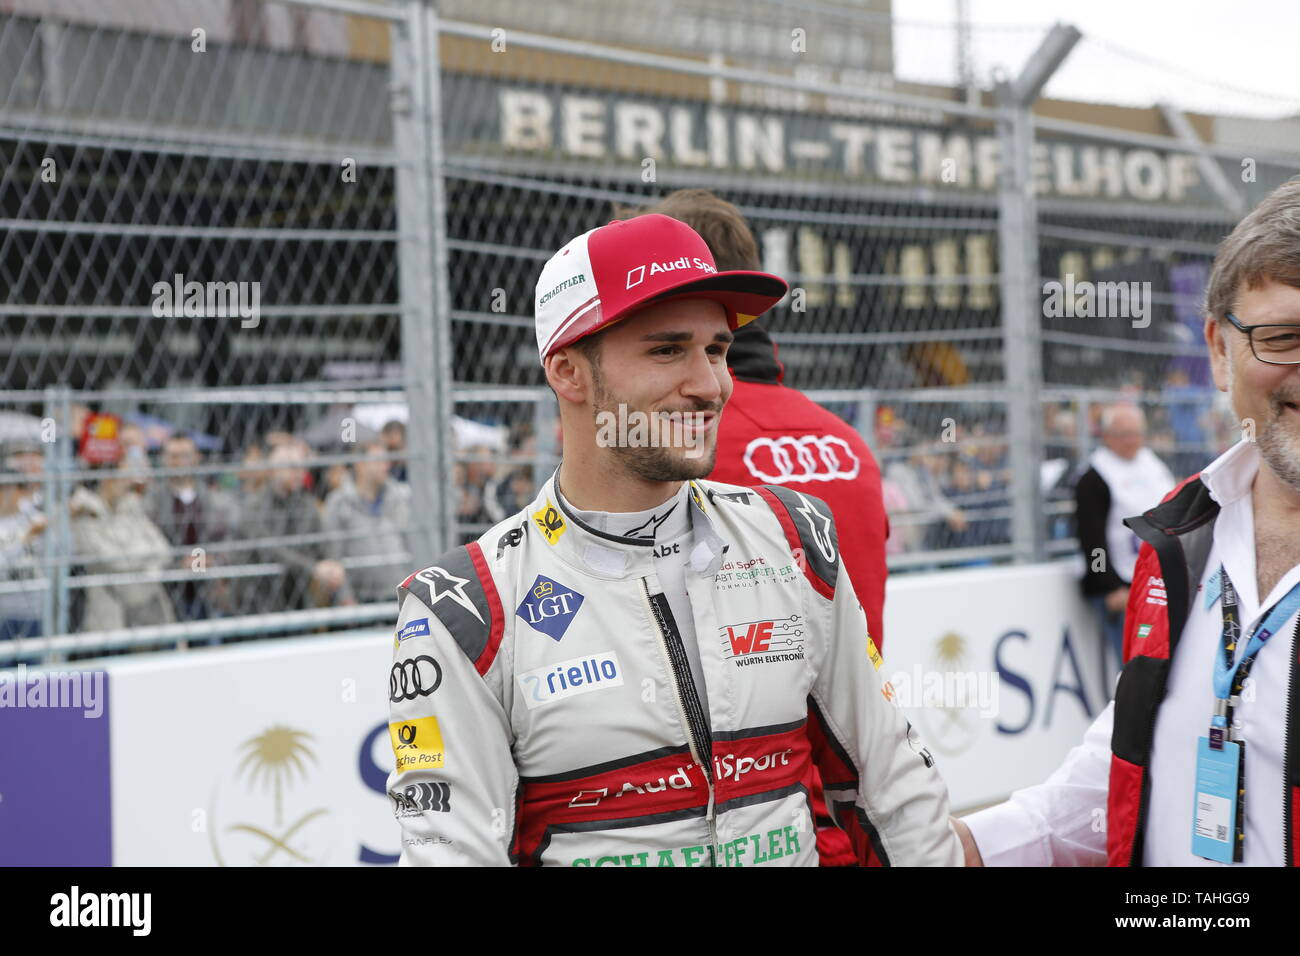 25.05.2019, Berlin, Germany.Daniel Abt at the grid. Lucas Di Grassi from the Audi Sport Abt Schaeffler team wins the Berlin ePrix. Sébastien Buemi from the team Nissan e.dams wins the second place and Jean-Eric Vergne from the team DS TECHEETAH wins the third place. The Formula E will be on the 25th of May 2019 for the fifth time in Berlin. The electric racing series 2018/2018 will take place at the former Tempelhof Airport. - Stock Image